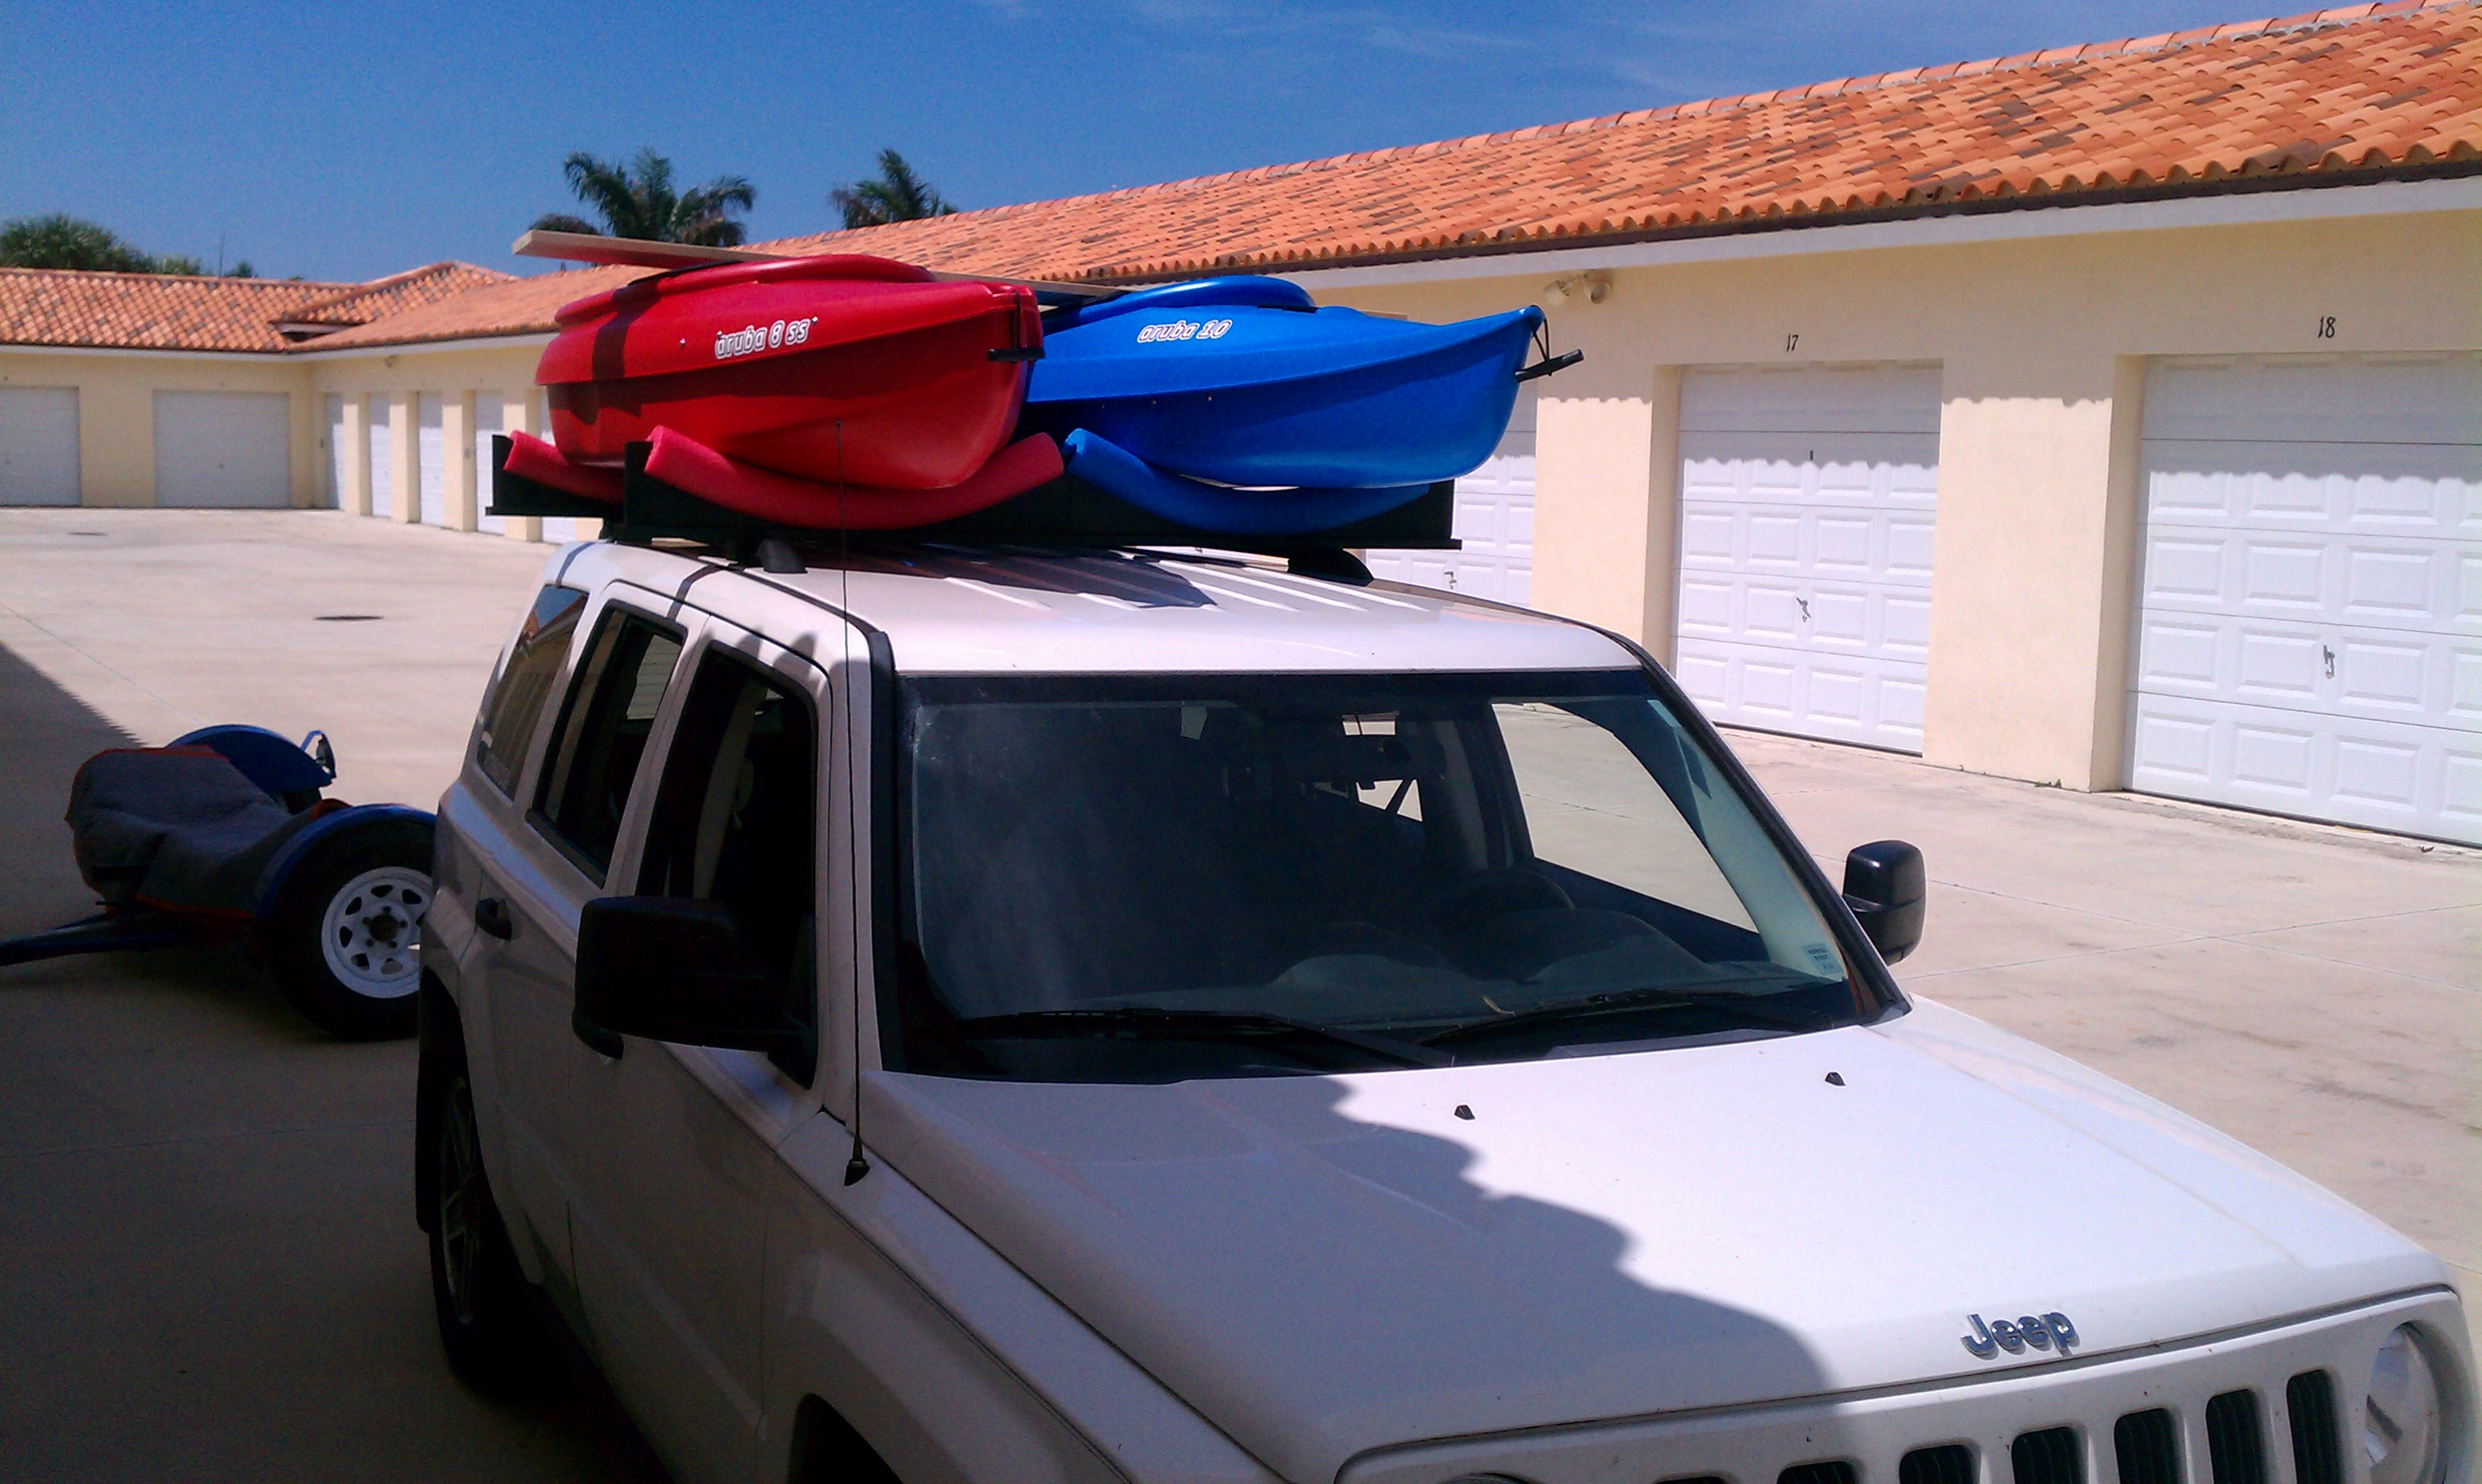 Picture of Car Top - 2 Kayak Rack (roof Rack Cars Only) About 30 Bucks...